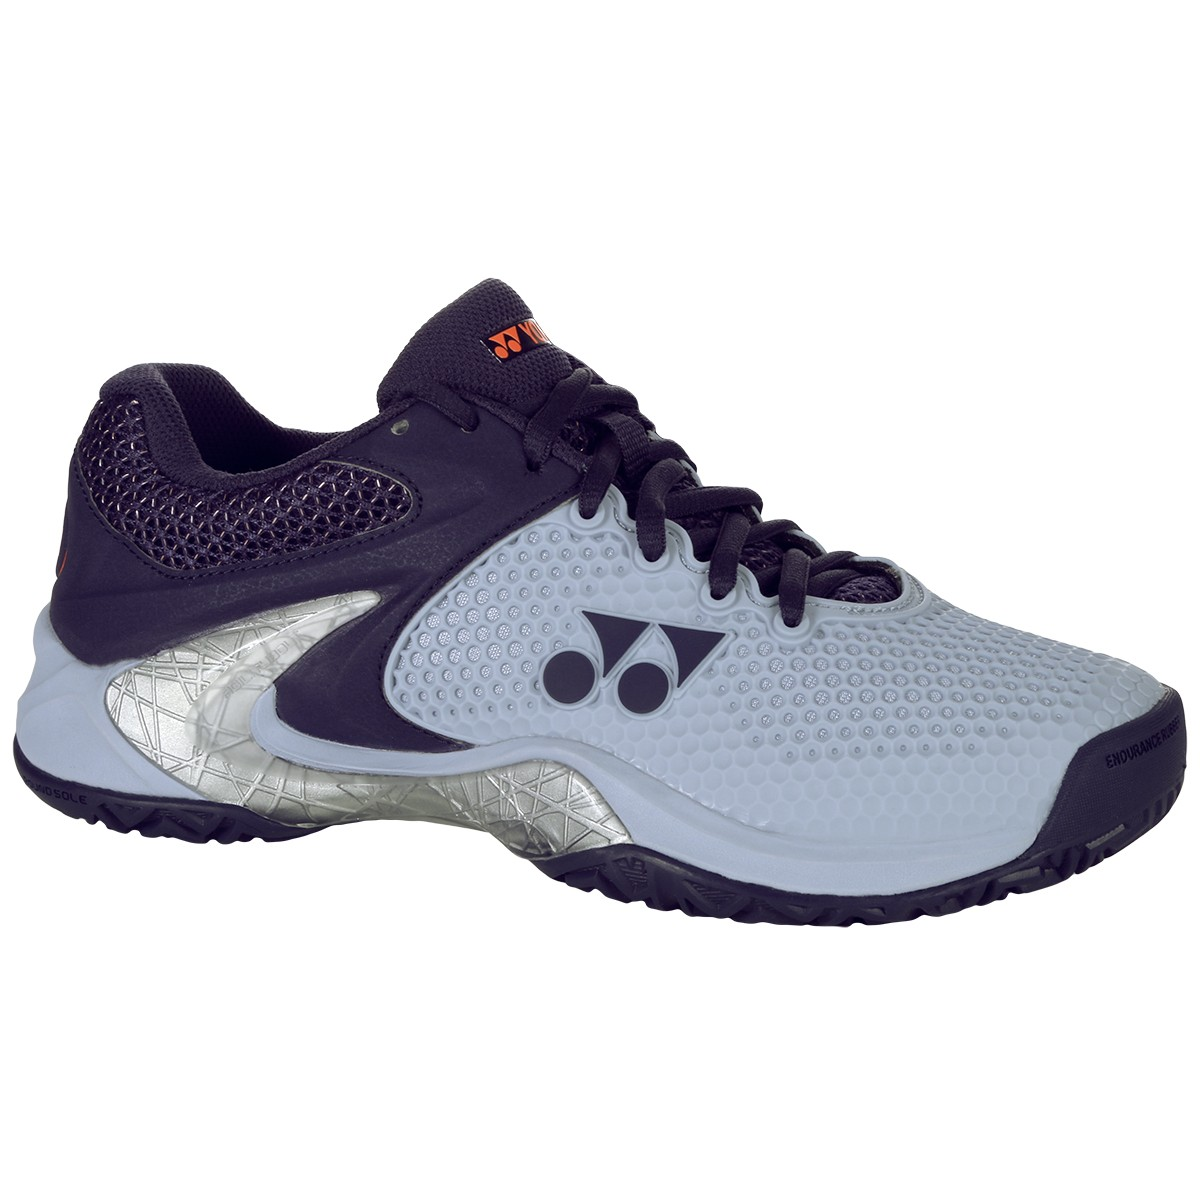 ZAPATILLAS YONEX MUJER POWER CUSHION ECLIPSION 2 TODAS LAS